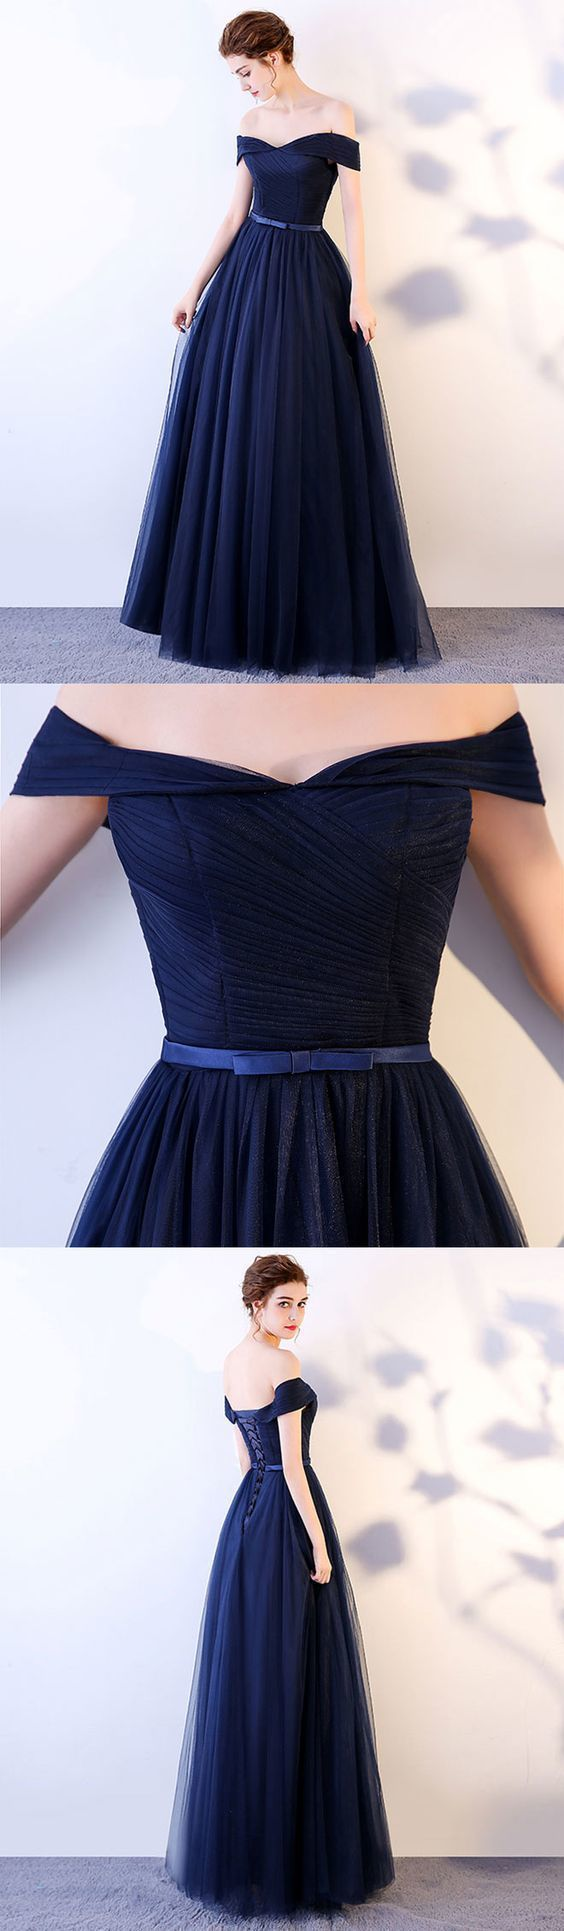 Navy Blue Handmade Party Dress 13,Formal Gowns, Off Shoulder